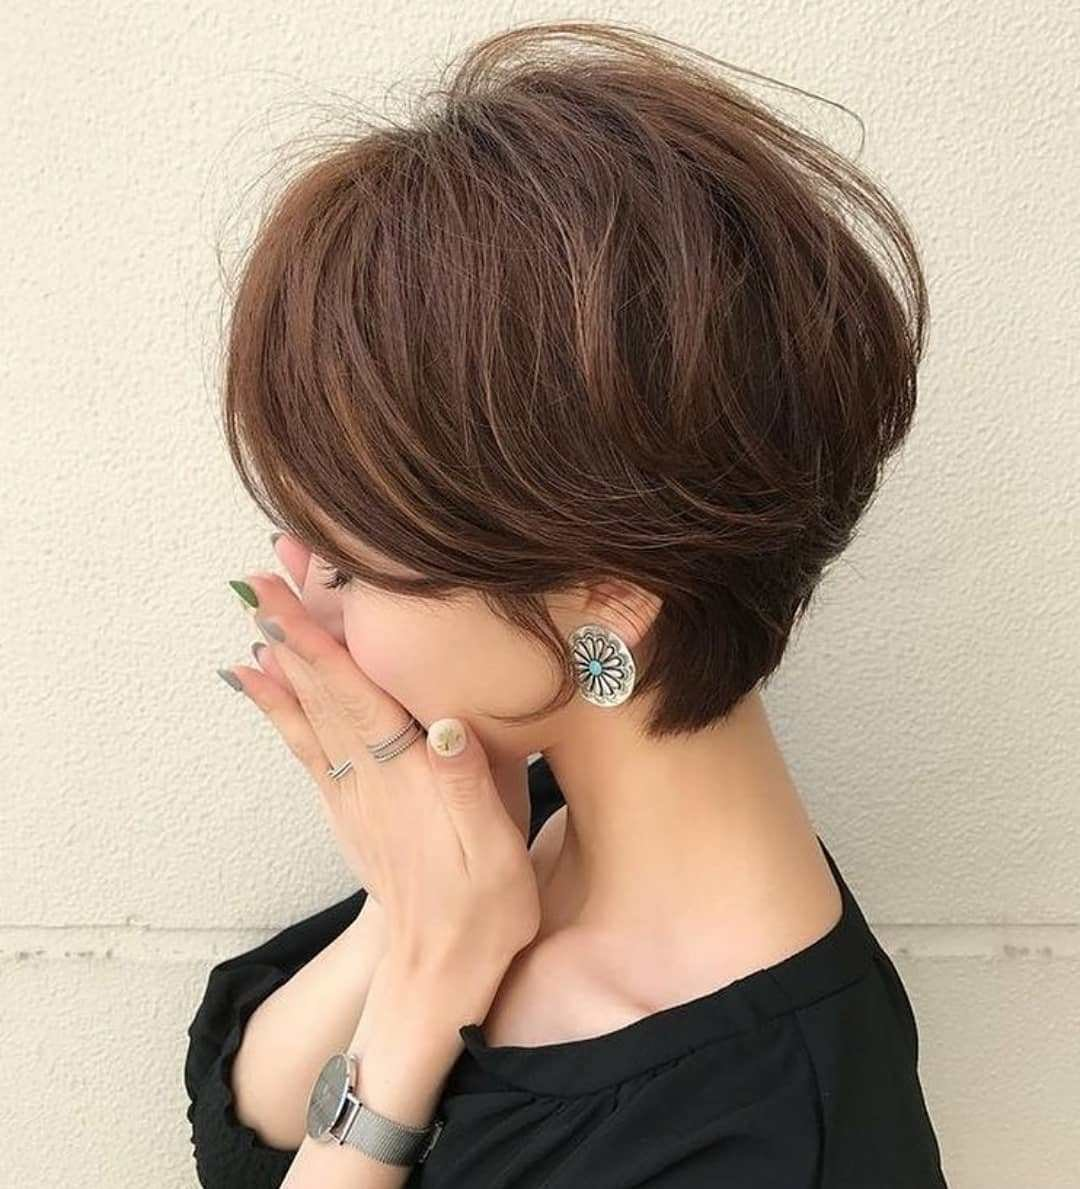 New 10 Cute Short Hairstyles And Haircuts For Young Girls Ideas With Pictures